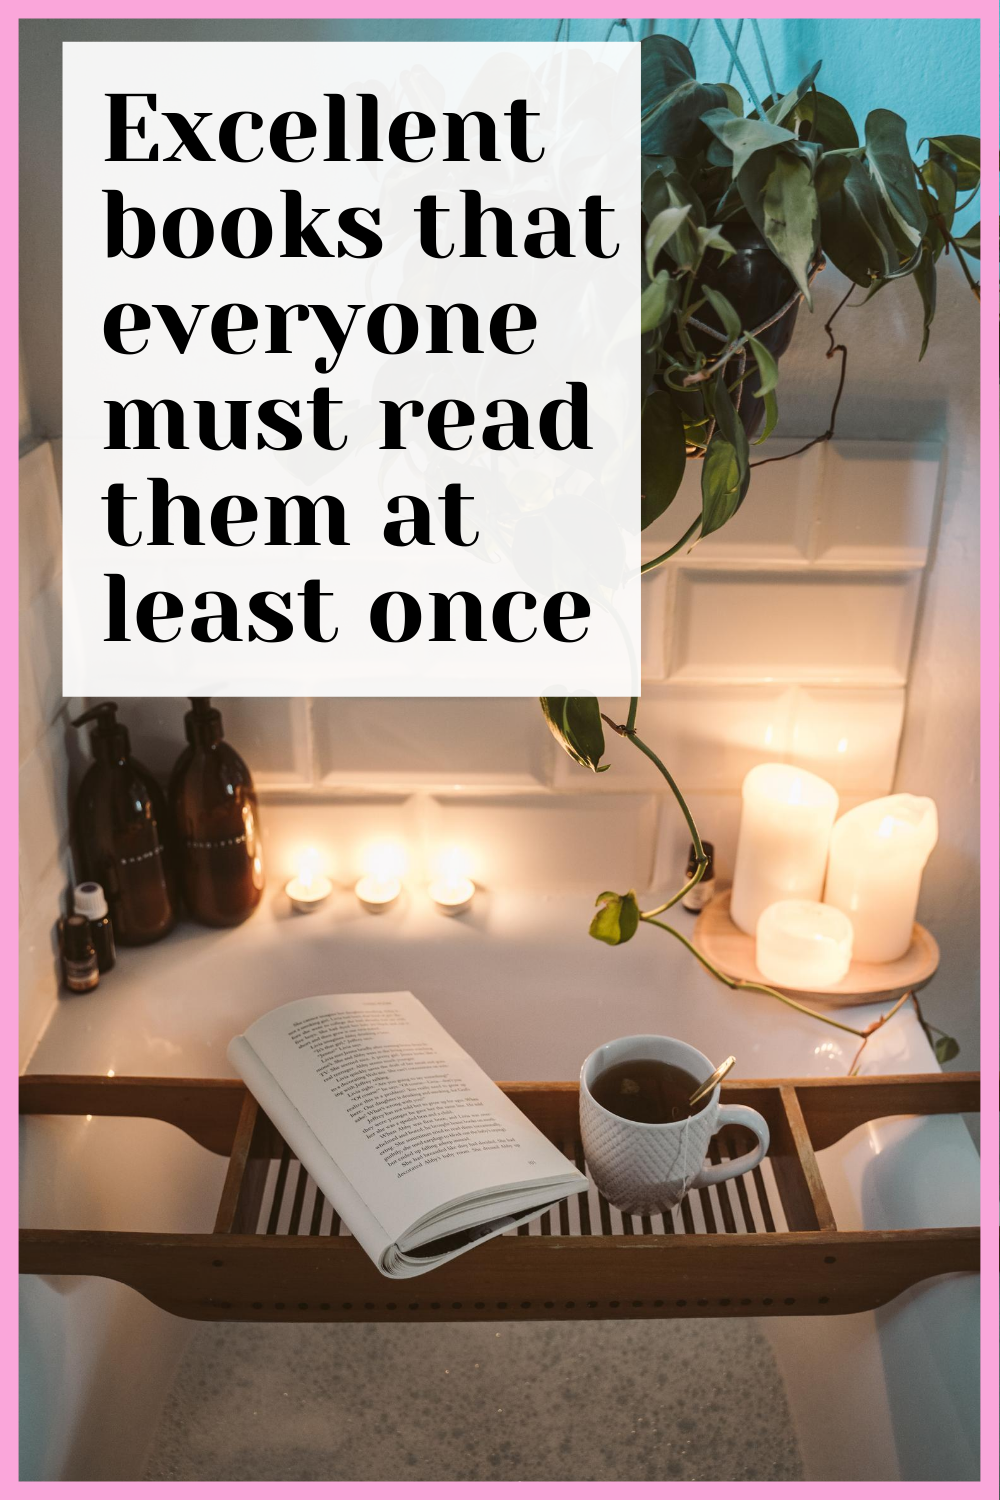 Excellent books that everyone must read them at least once. Self-development books -  #selfdevelopmentbooks #lifechangingbooks